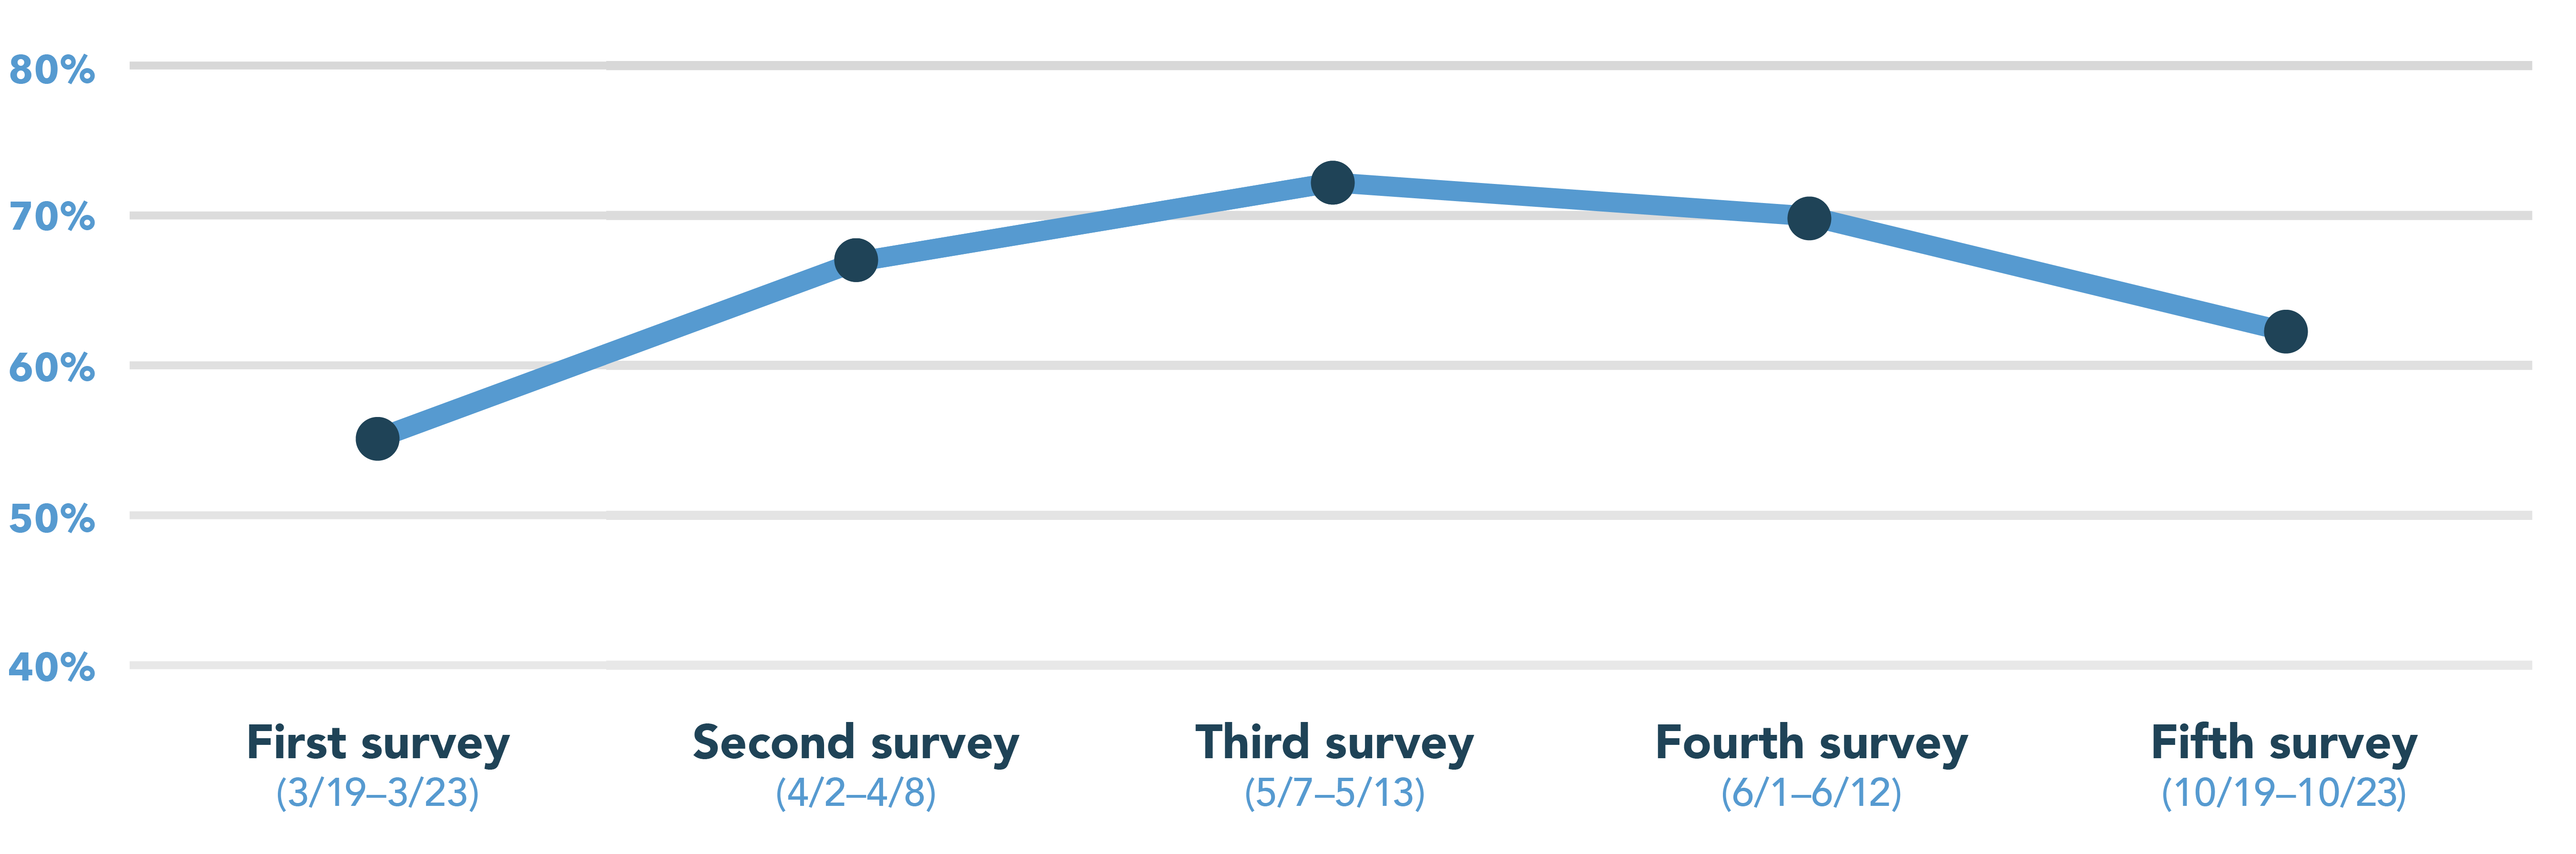 Our latest surveys showed willingness to participate in a clinical trial trending down, from 70% to 62%.